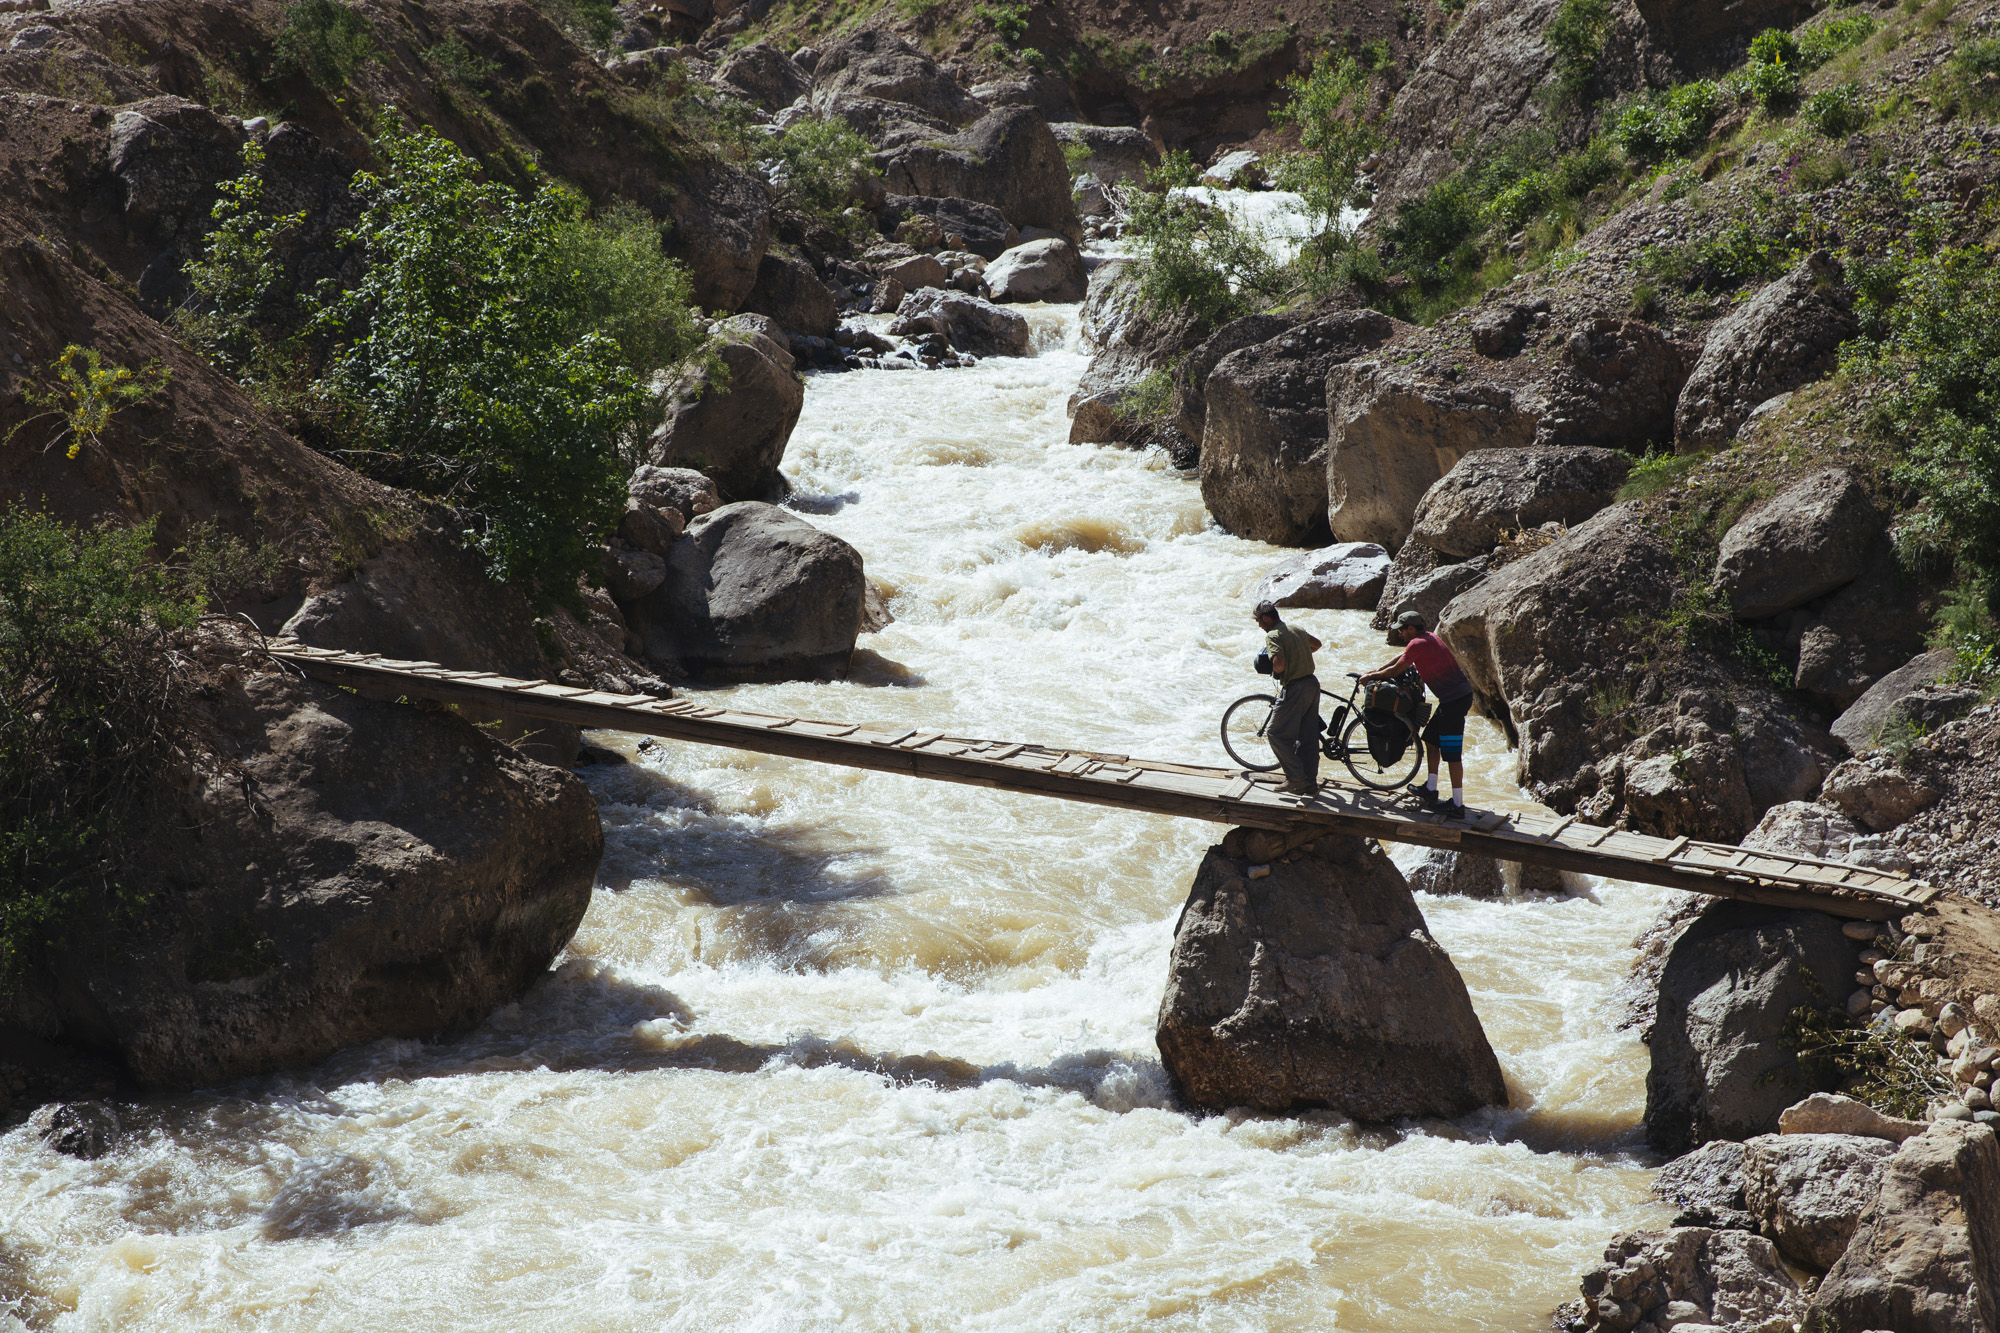 One of the makeshift bridges that allow us to do the northern route to Khorog.